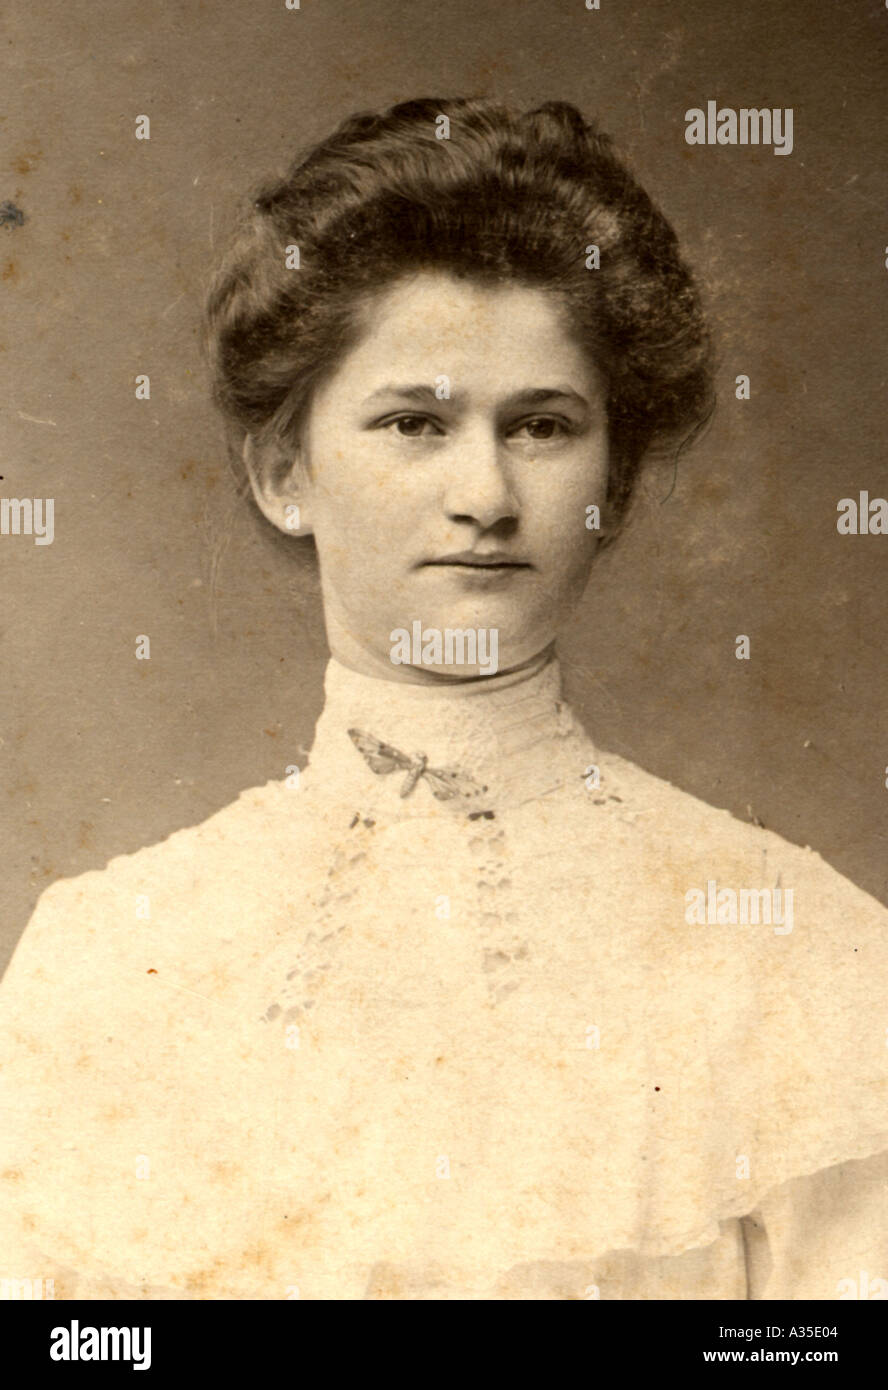 Historical picture photographica 1900 sepia - Stock Image